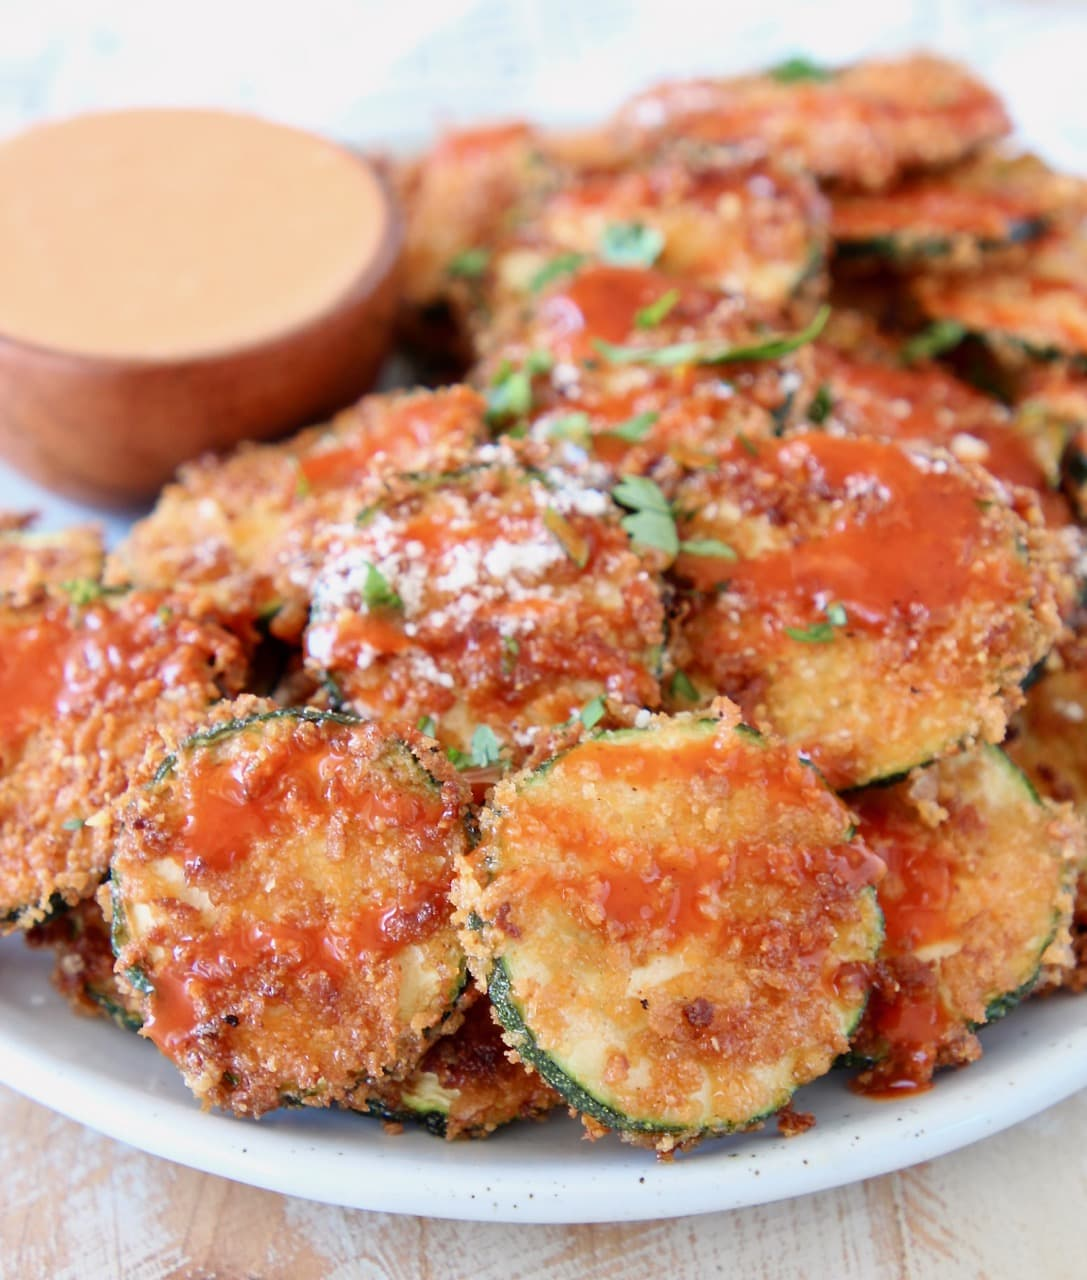 Crispy zucchini chips on plate drizzled with buffalo sauce and parmesan cheese